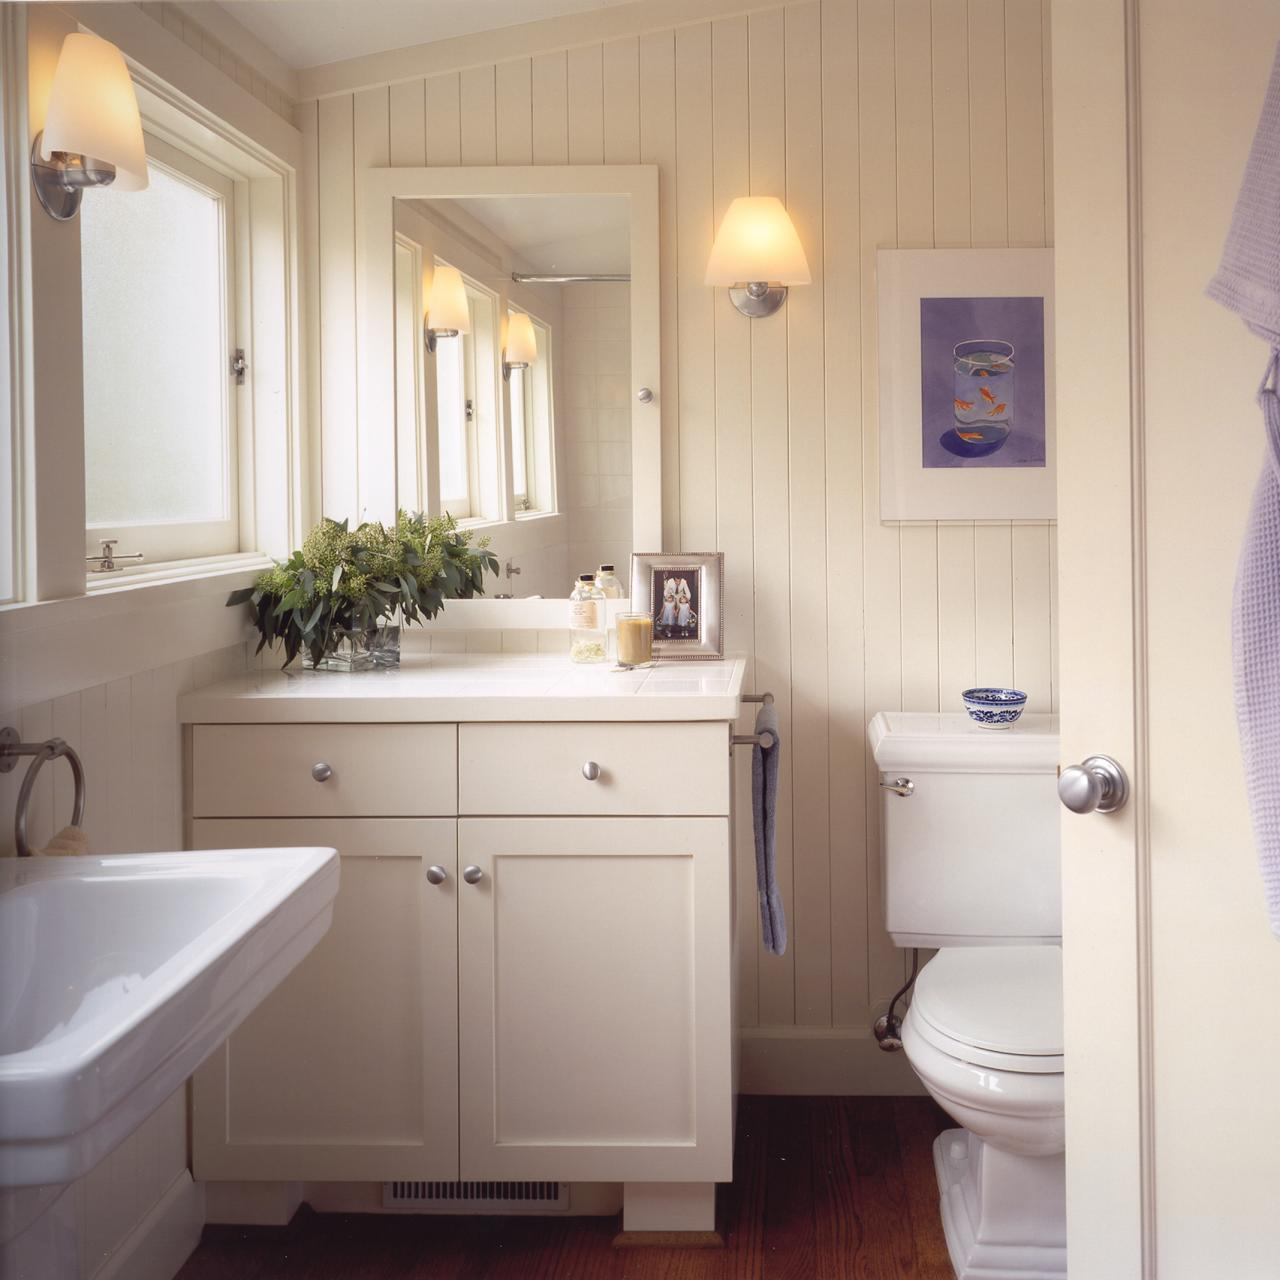 Heidi-Richardson_Renovation-Cottage-Ross-Bathroom.jpg.rend.hgtvcom.1280.1280